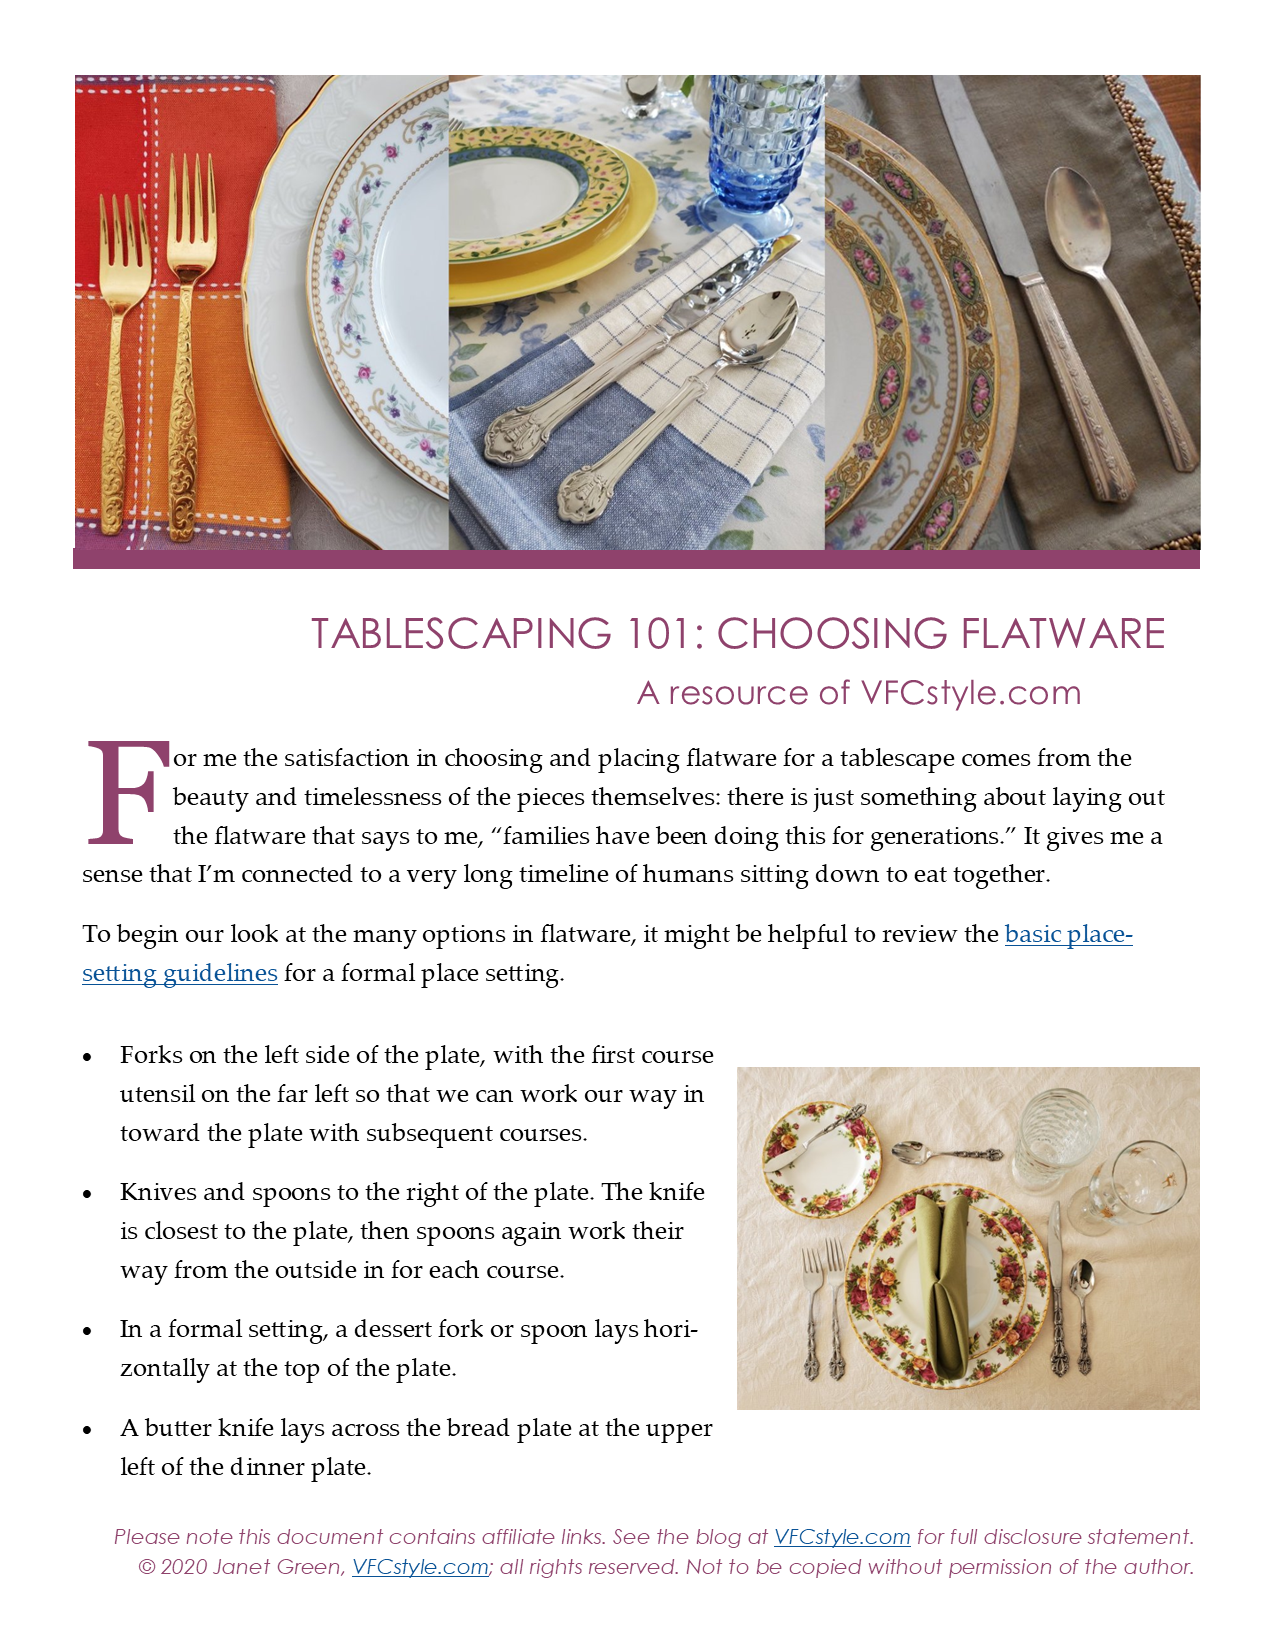 Choose Flatware for Your Tablescape